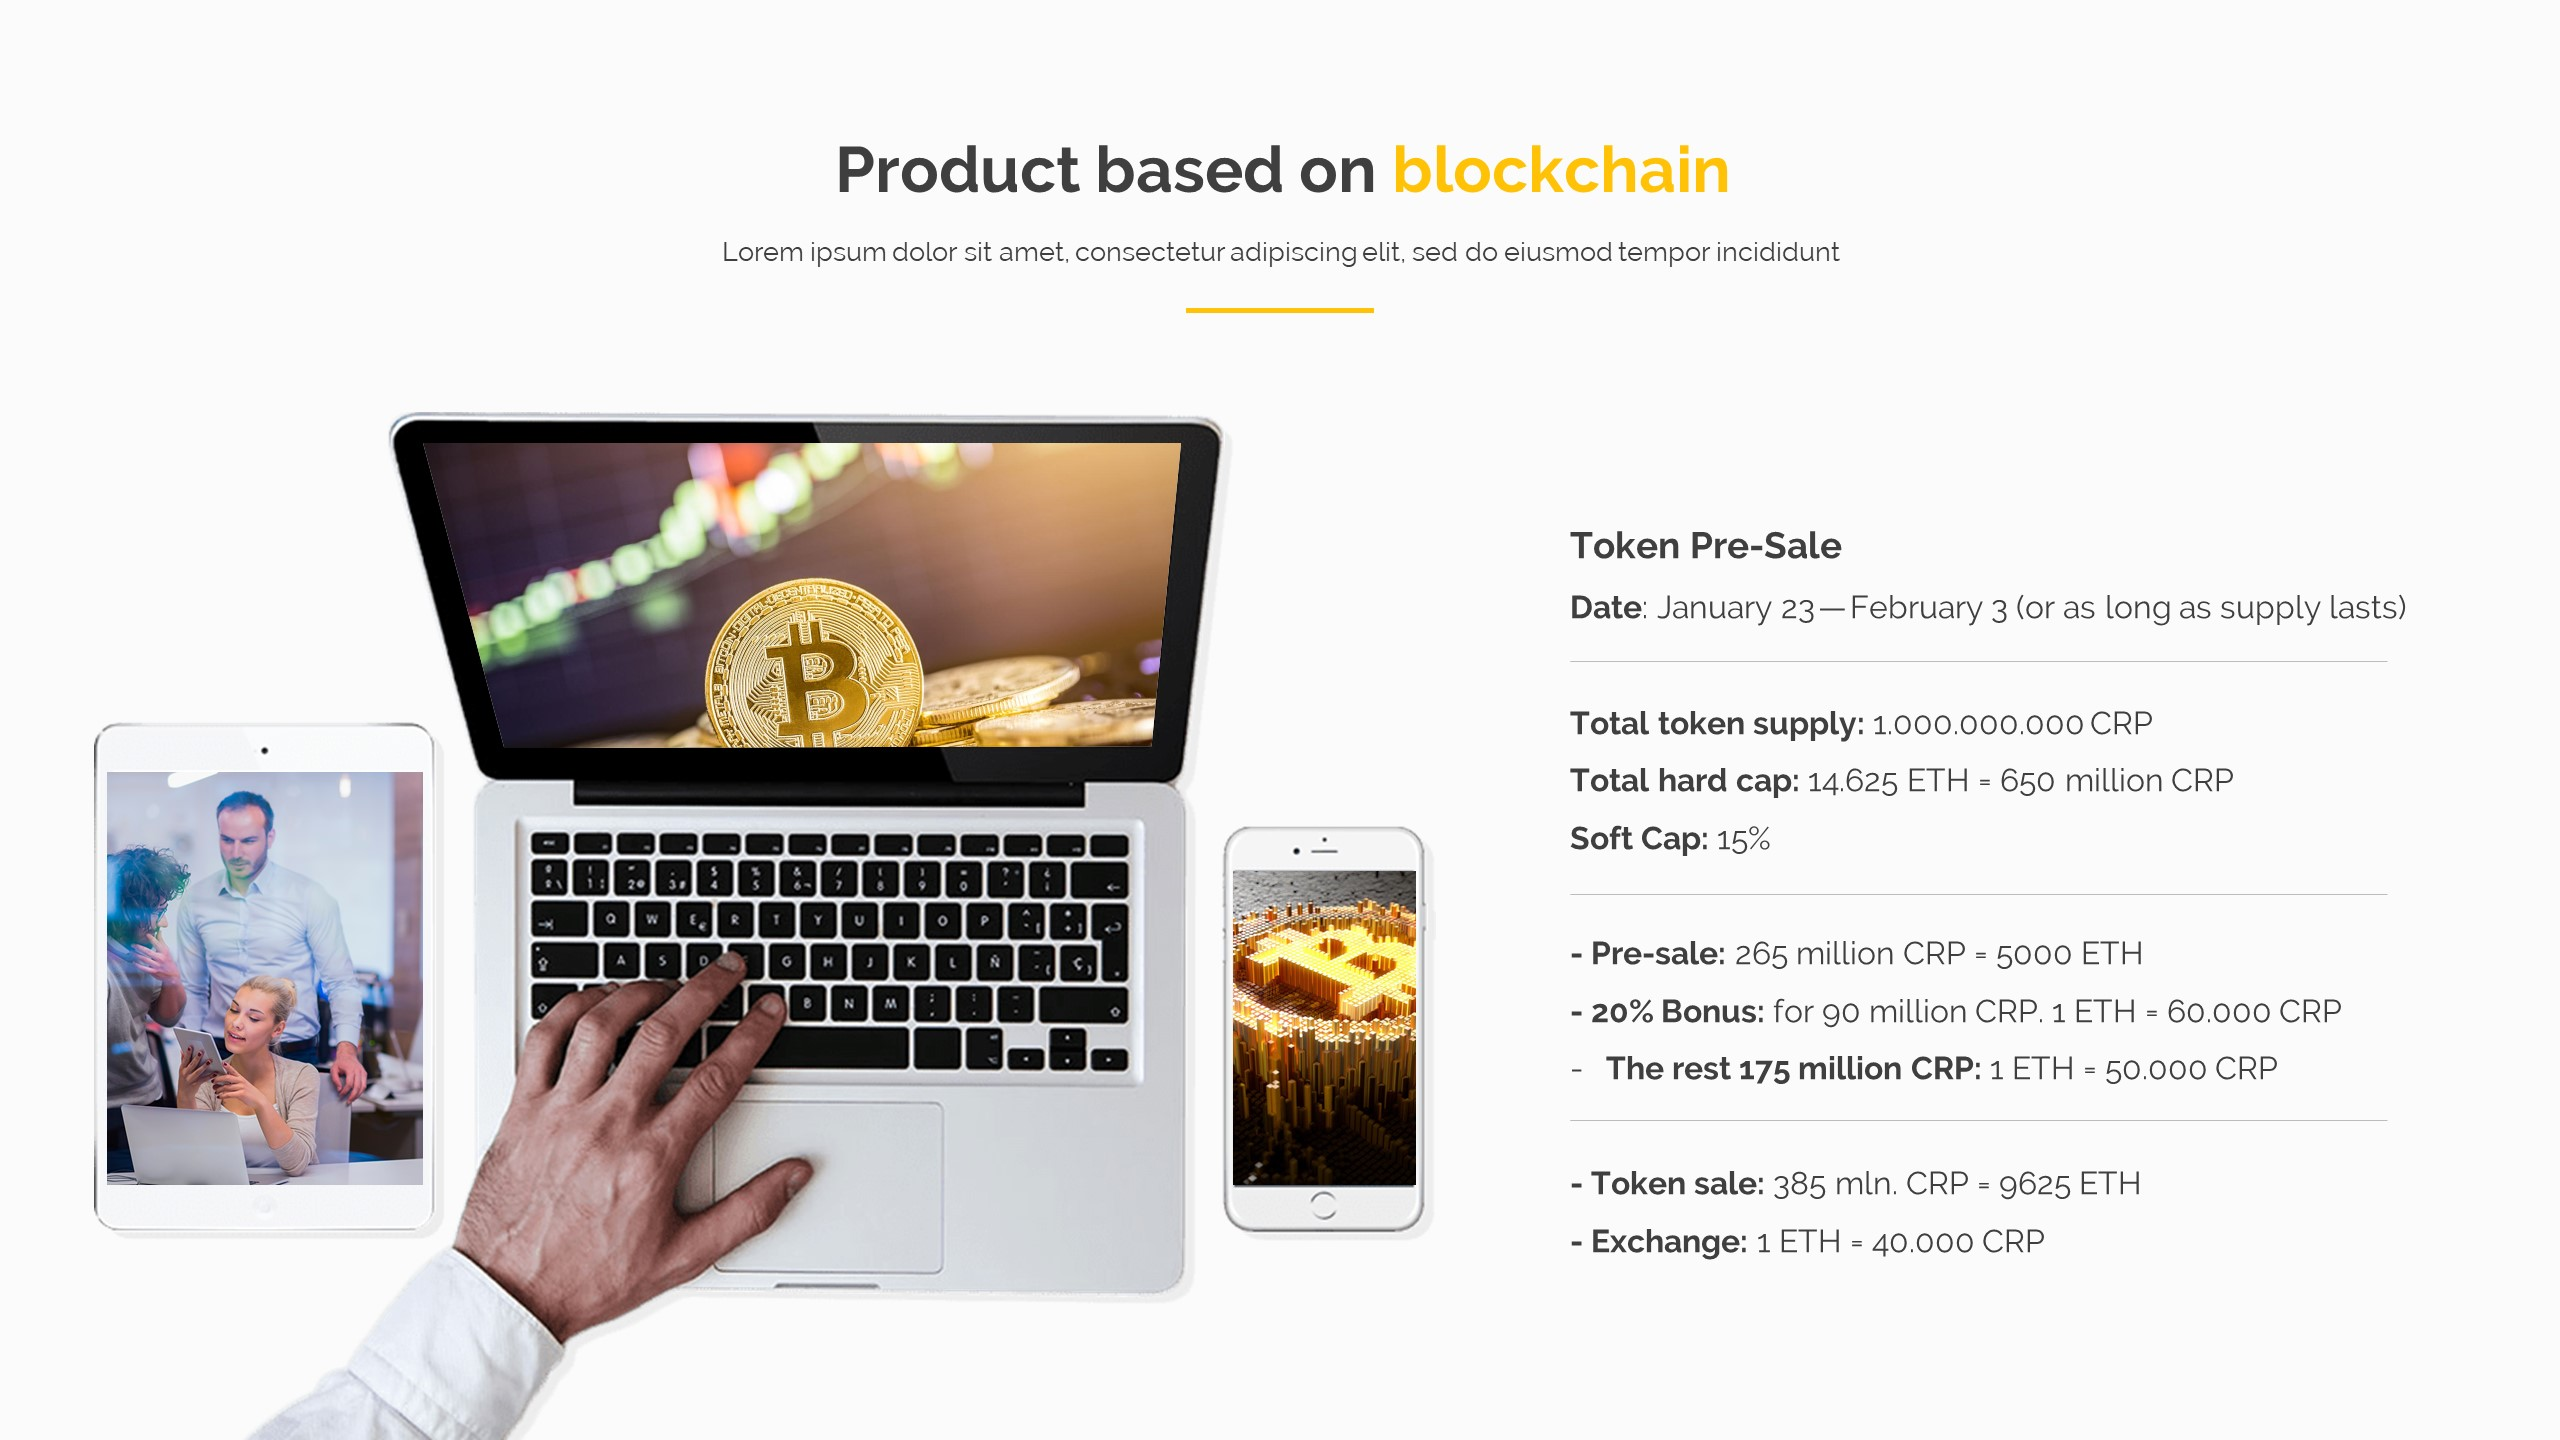 Coin exchange and crypto currency powerpoint template by bypaintdesign jpg preview image setslide9g toneelgroepblik Images